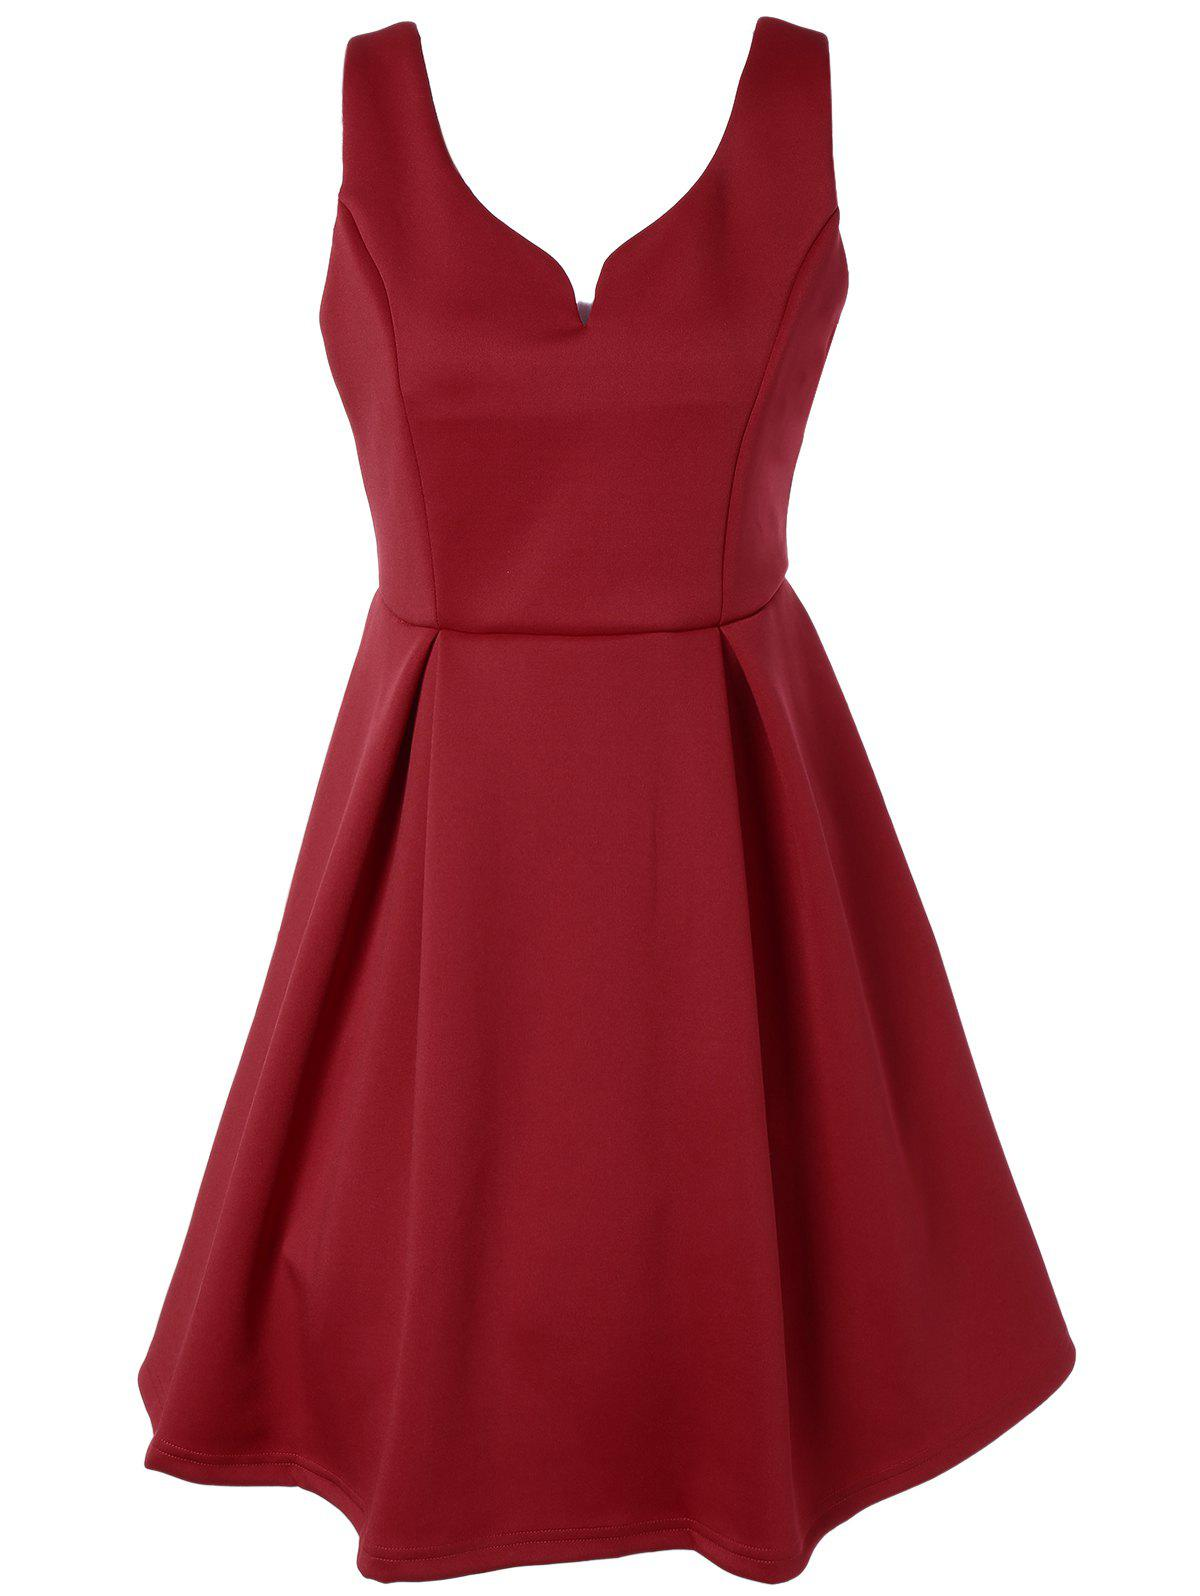 V Neck Fit and Flare Cocktail Dress - RED 2XL